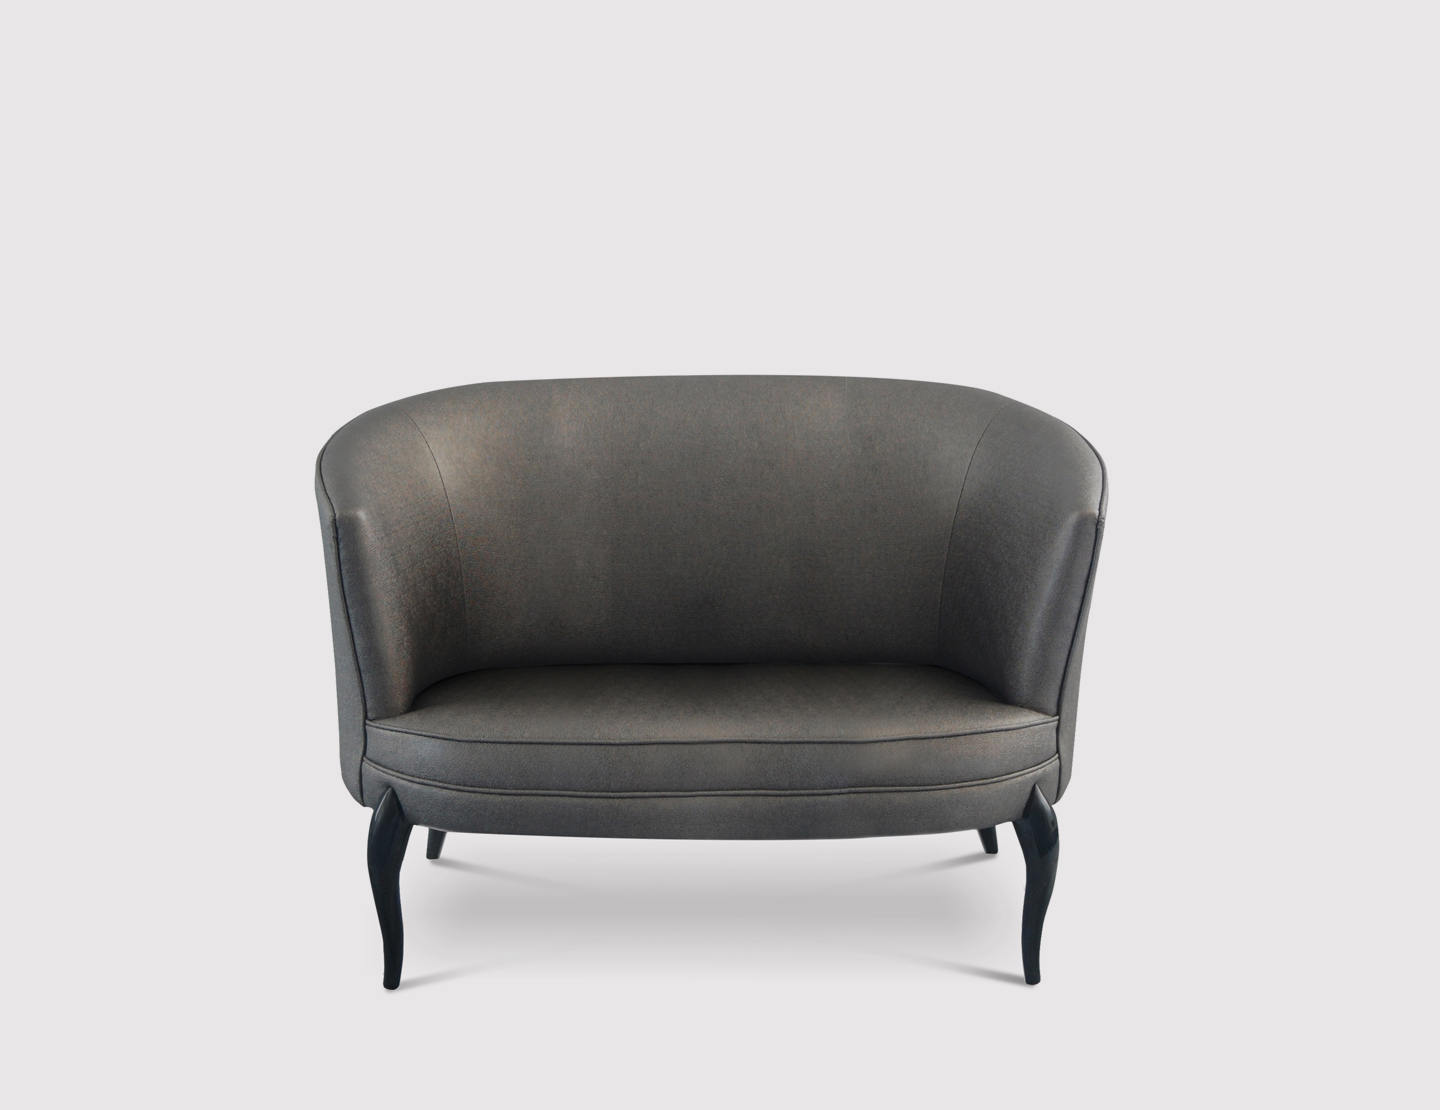 Délice Sofa by KOKET